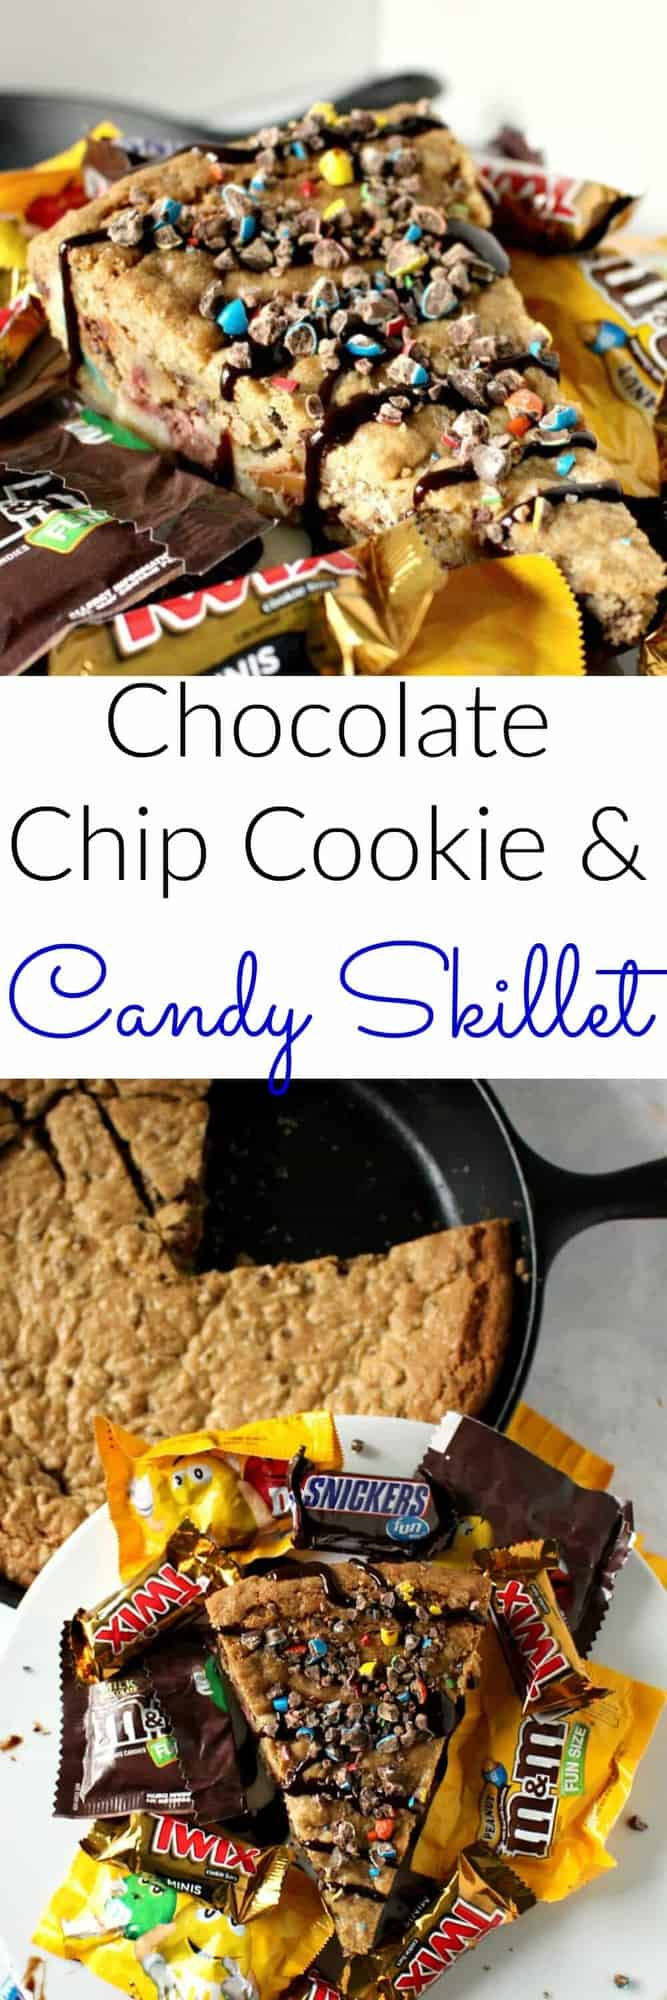 Chocolate Chip Cookie and Candy Skillet - loaded up with all of your favorite candy